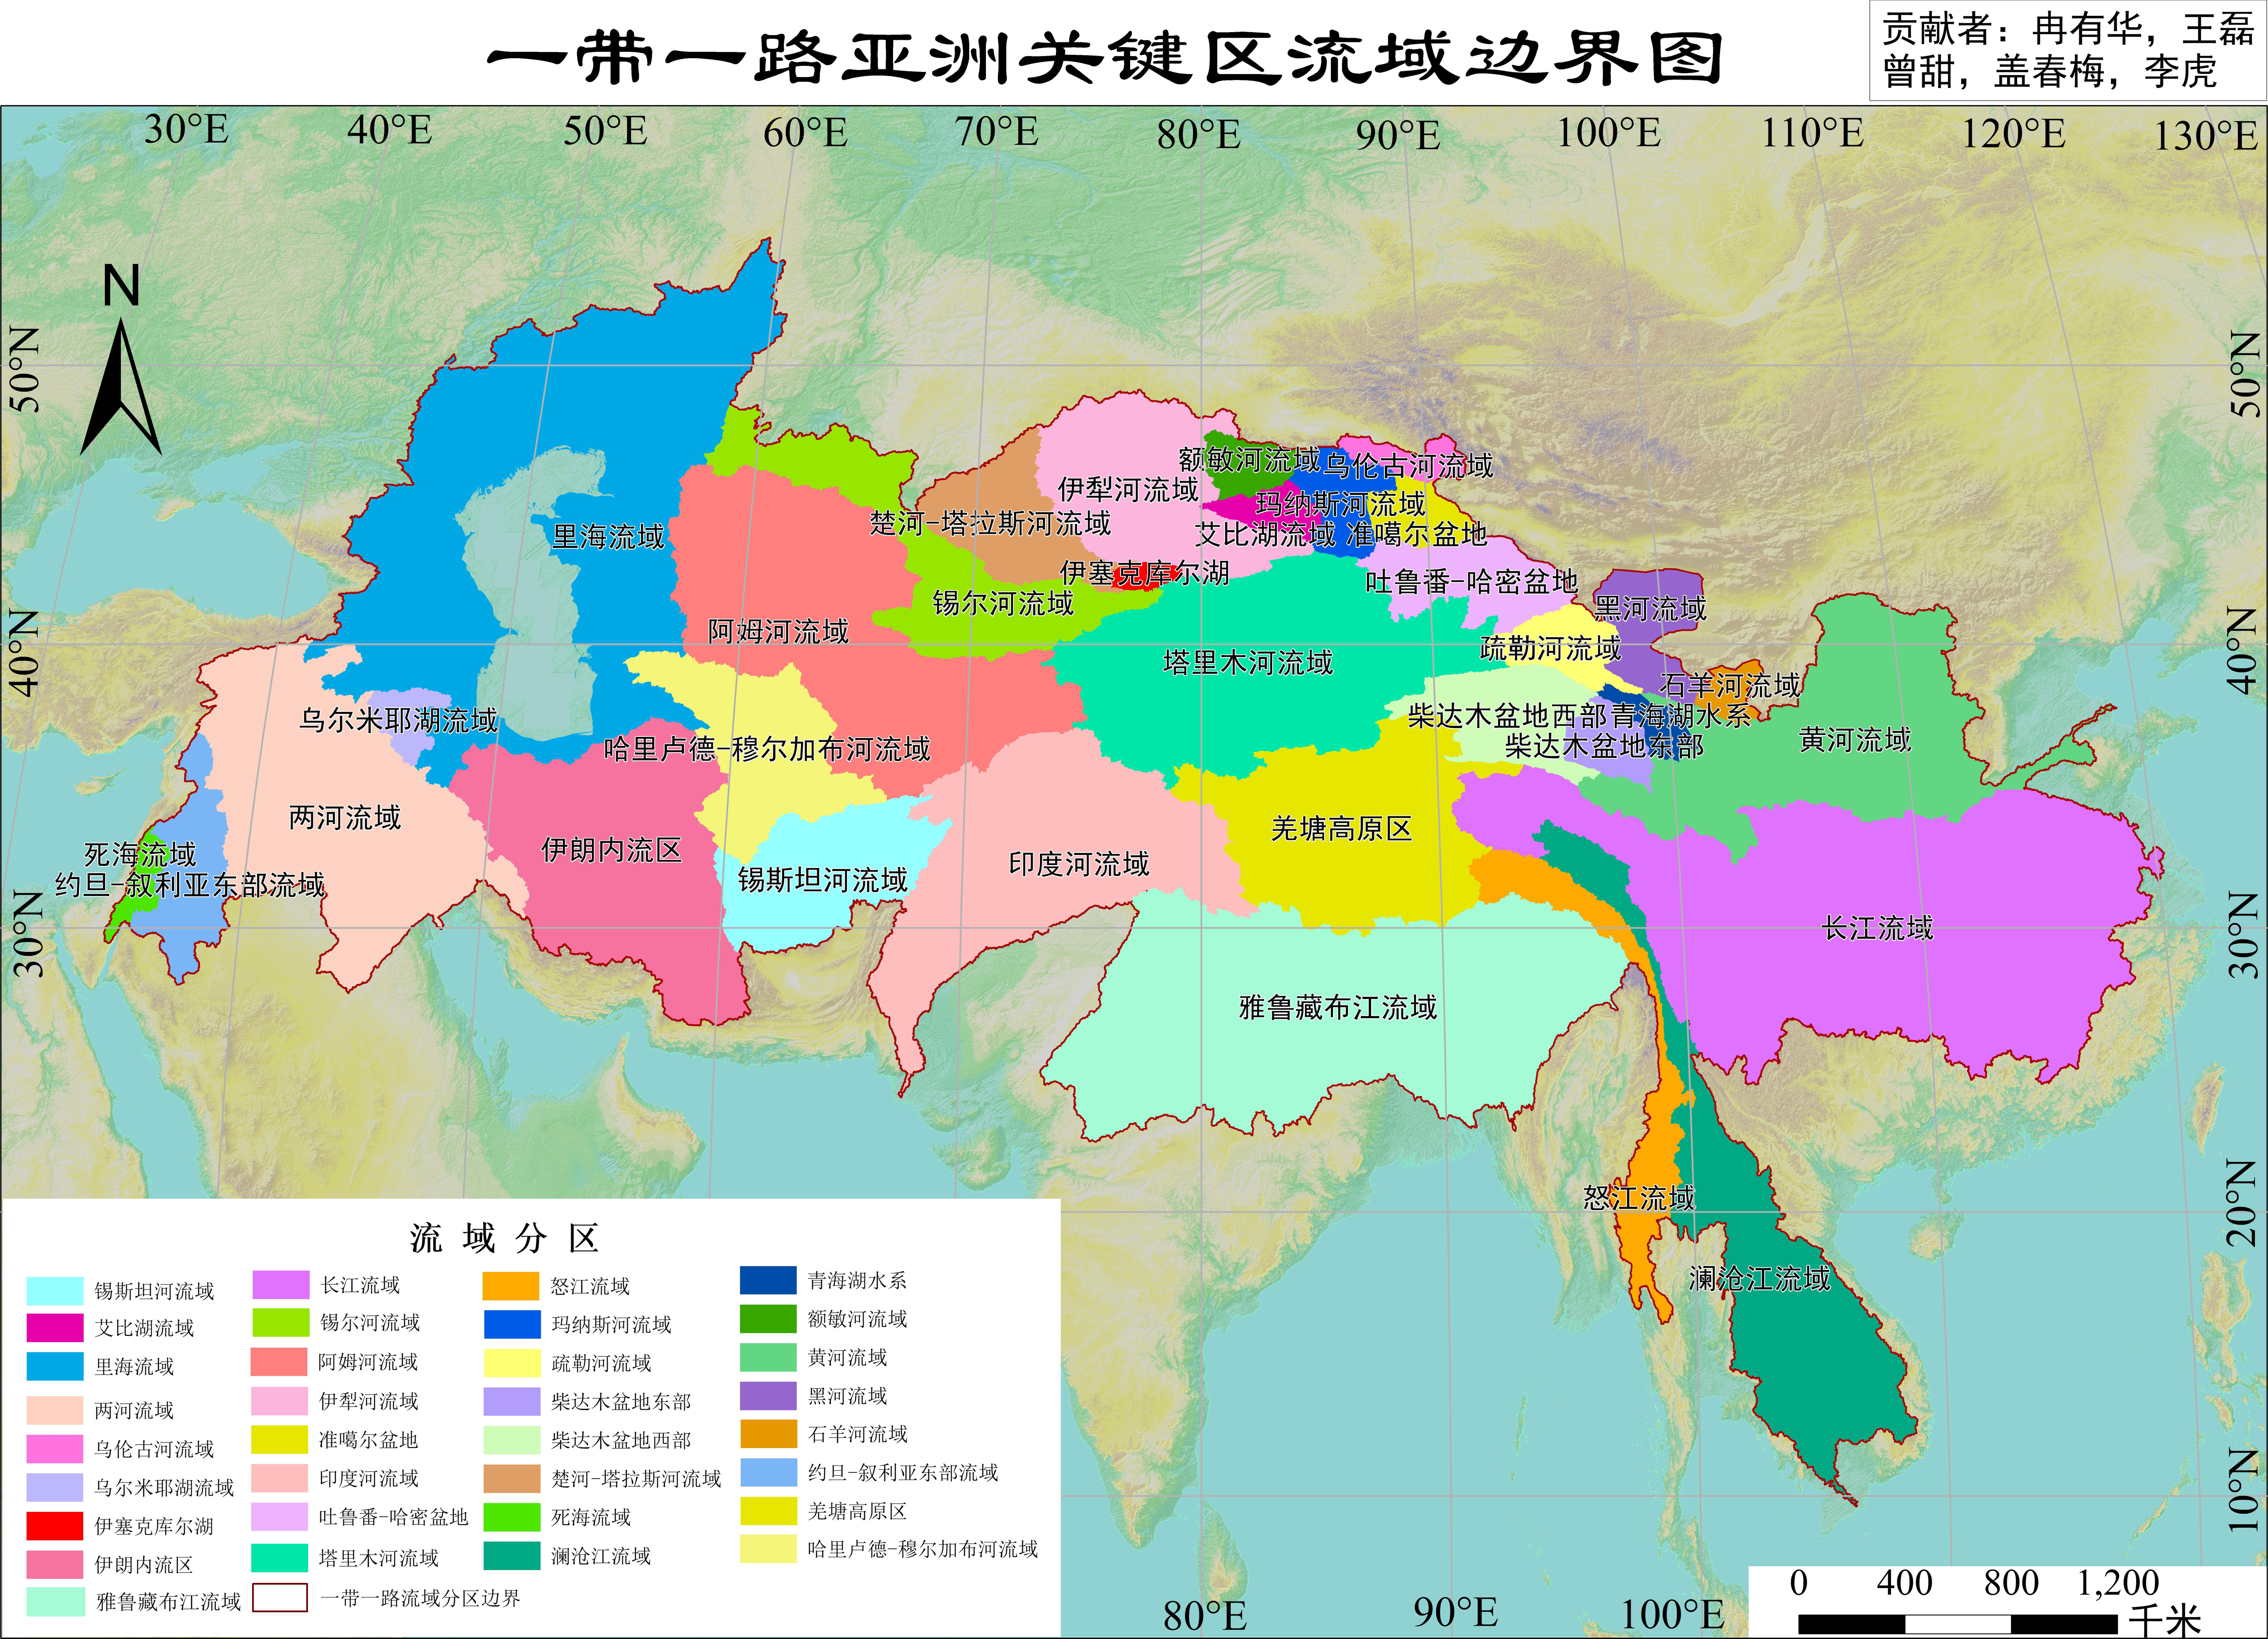 """One belt, one road"" boundary map of key basins in Asia"